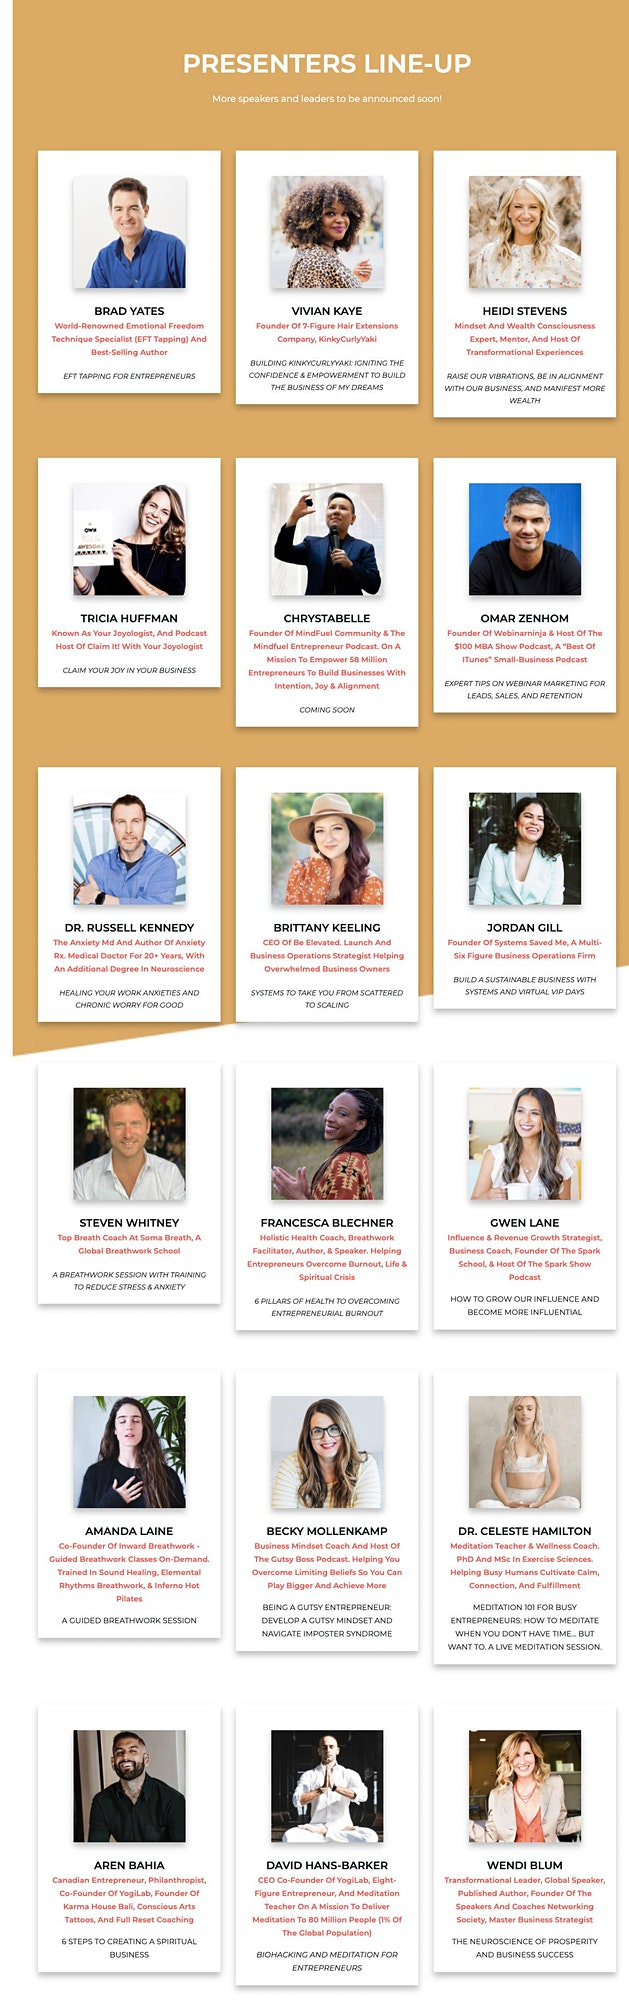 [Online] RELOAD Conference + Retreat For Entrepreneurs & Business Owners image